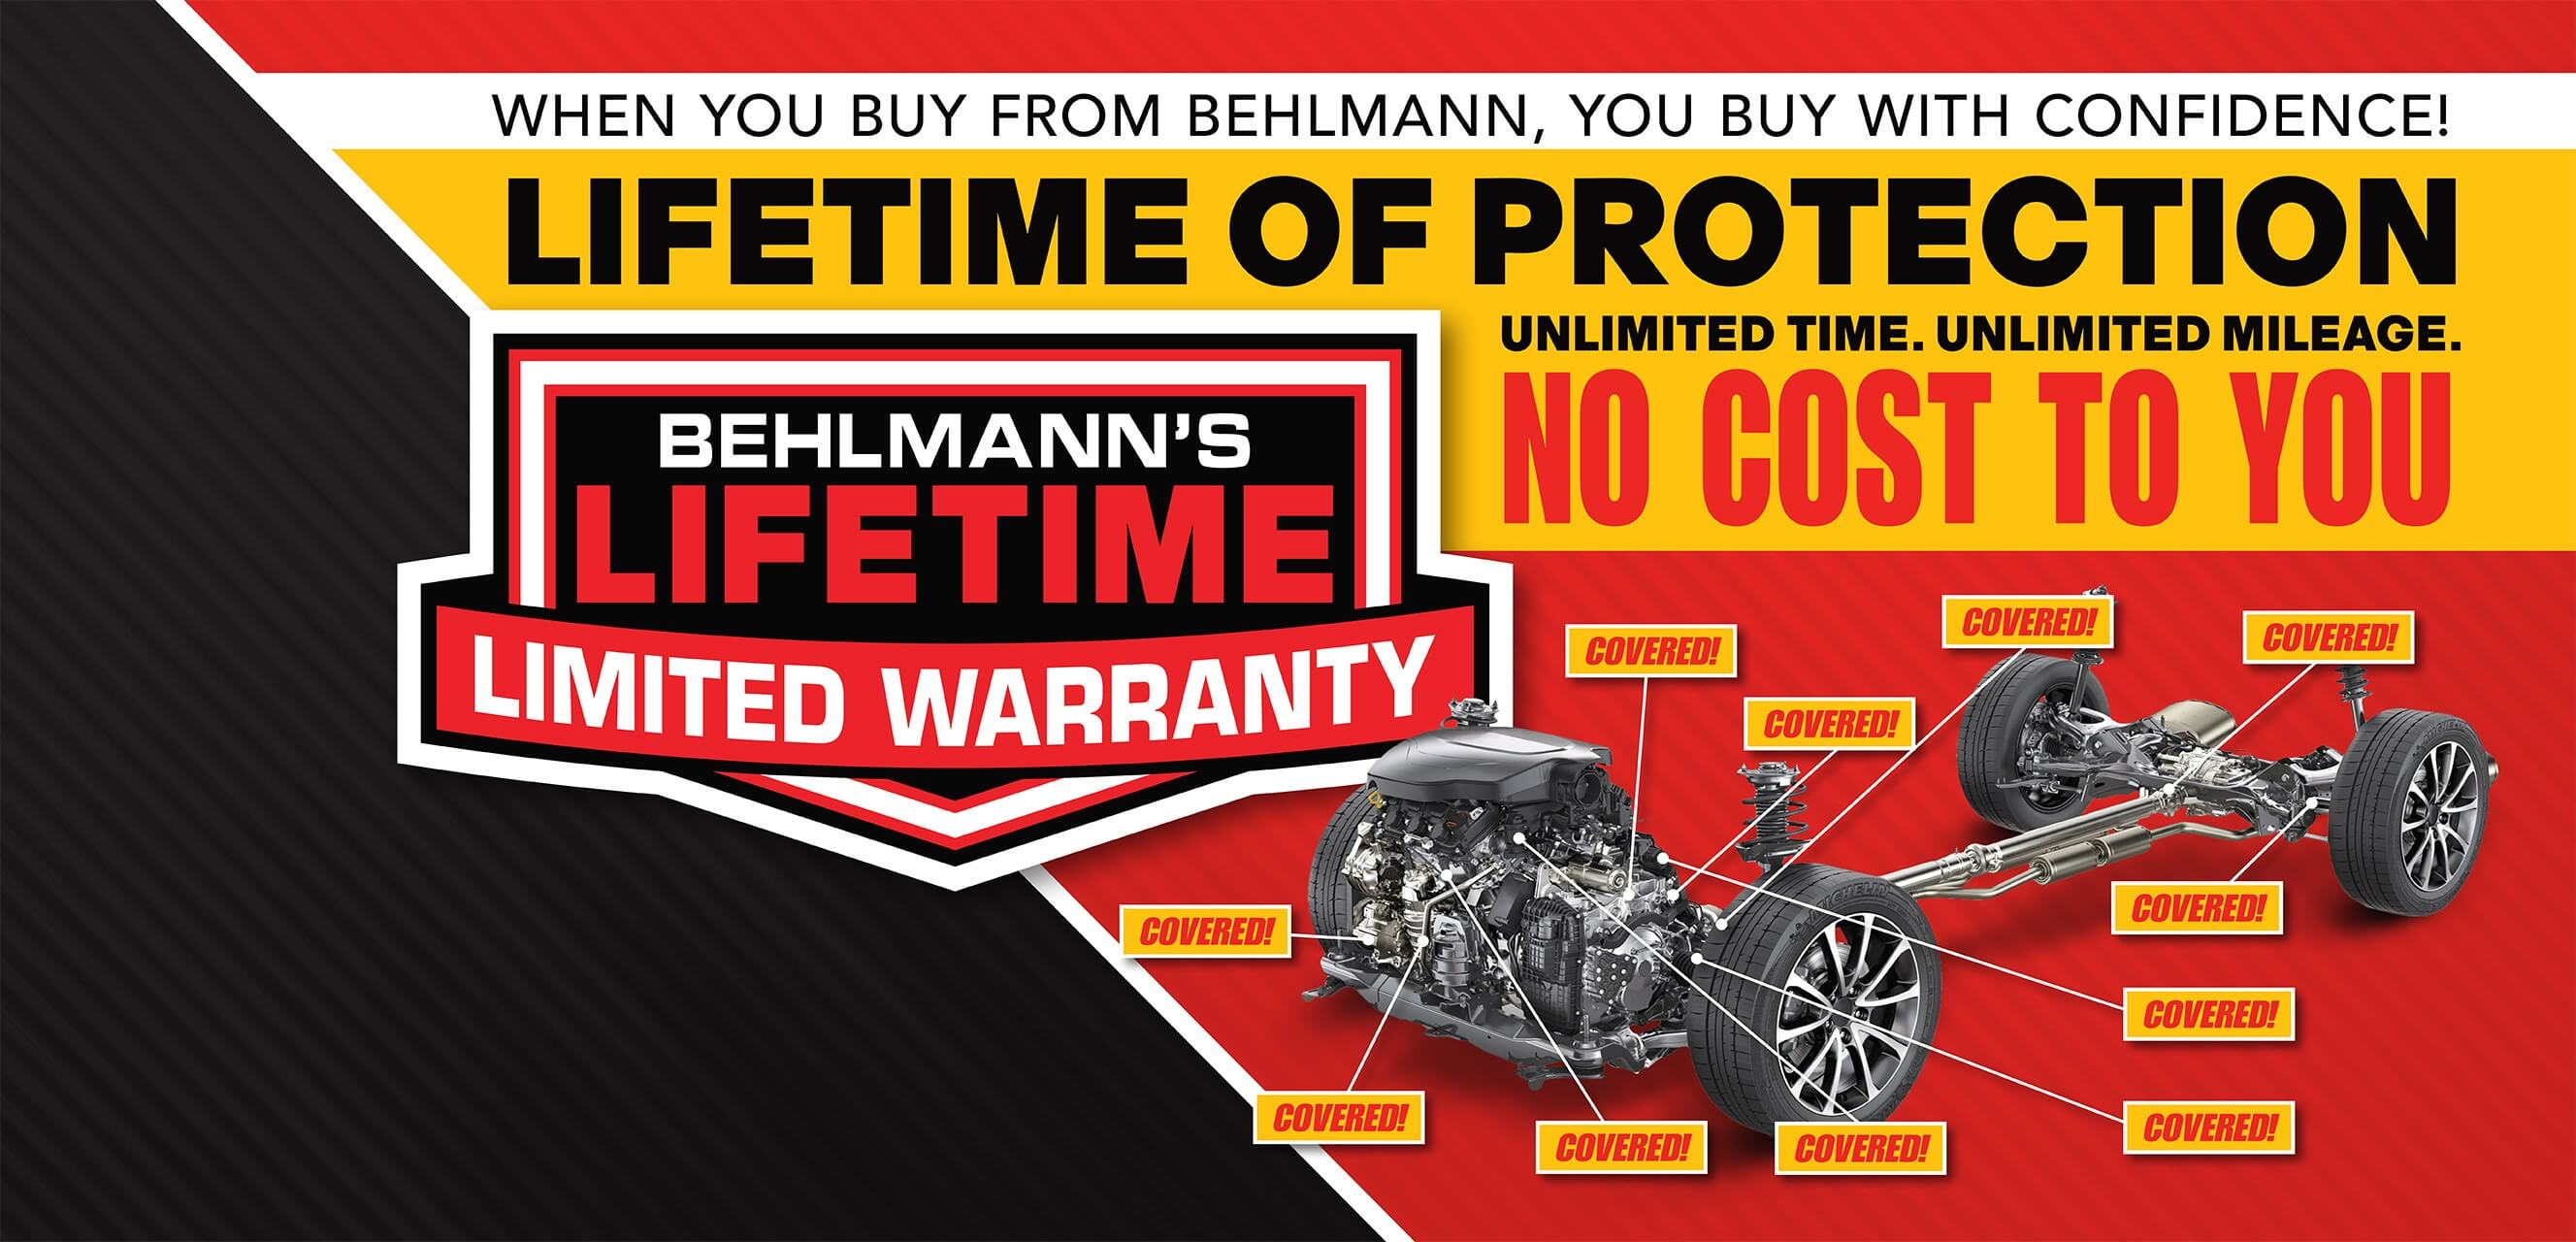 Behlmann's Lifetime Limited Warranty: A Lifetime of Protection. Unlimited time, unlimited mileage, at no cost to you.